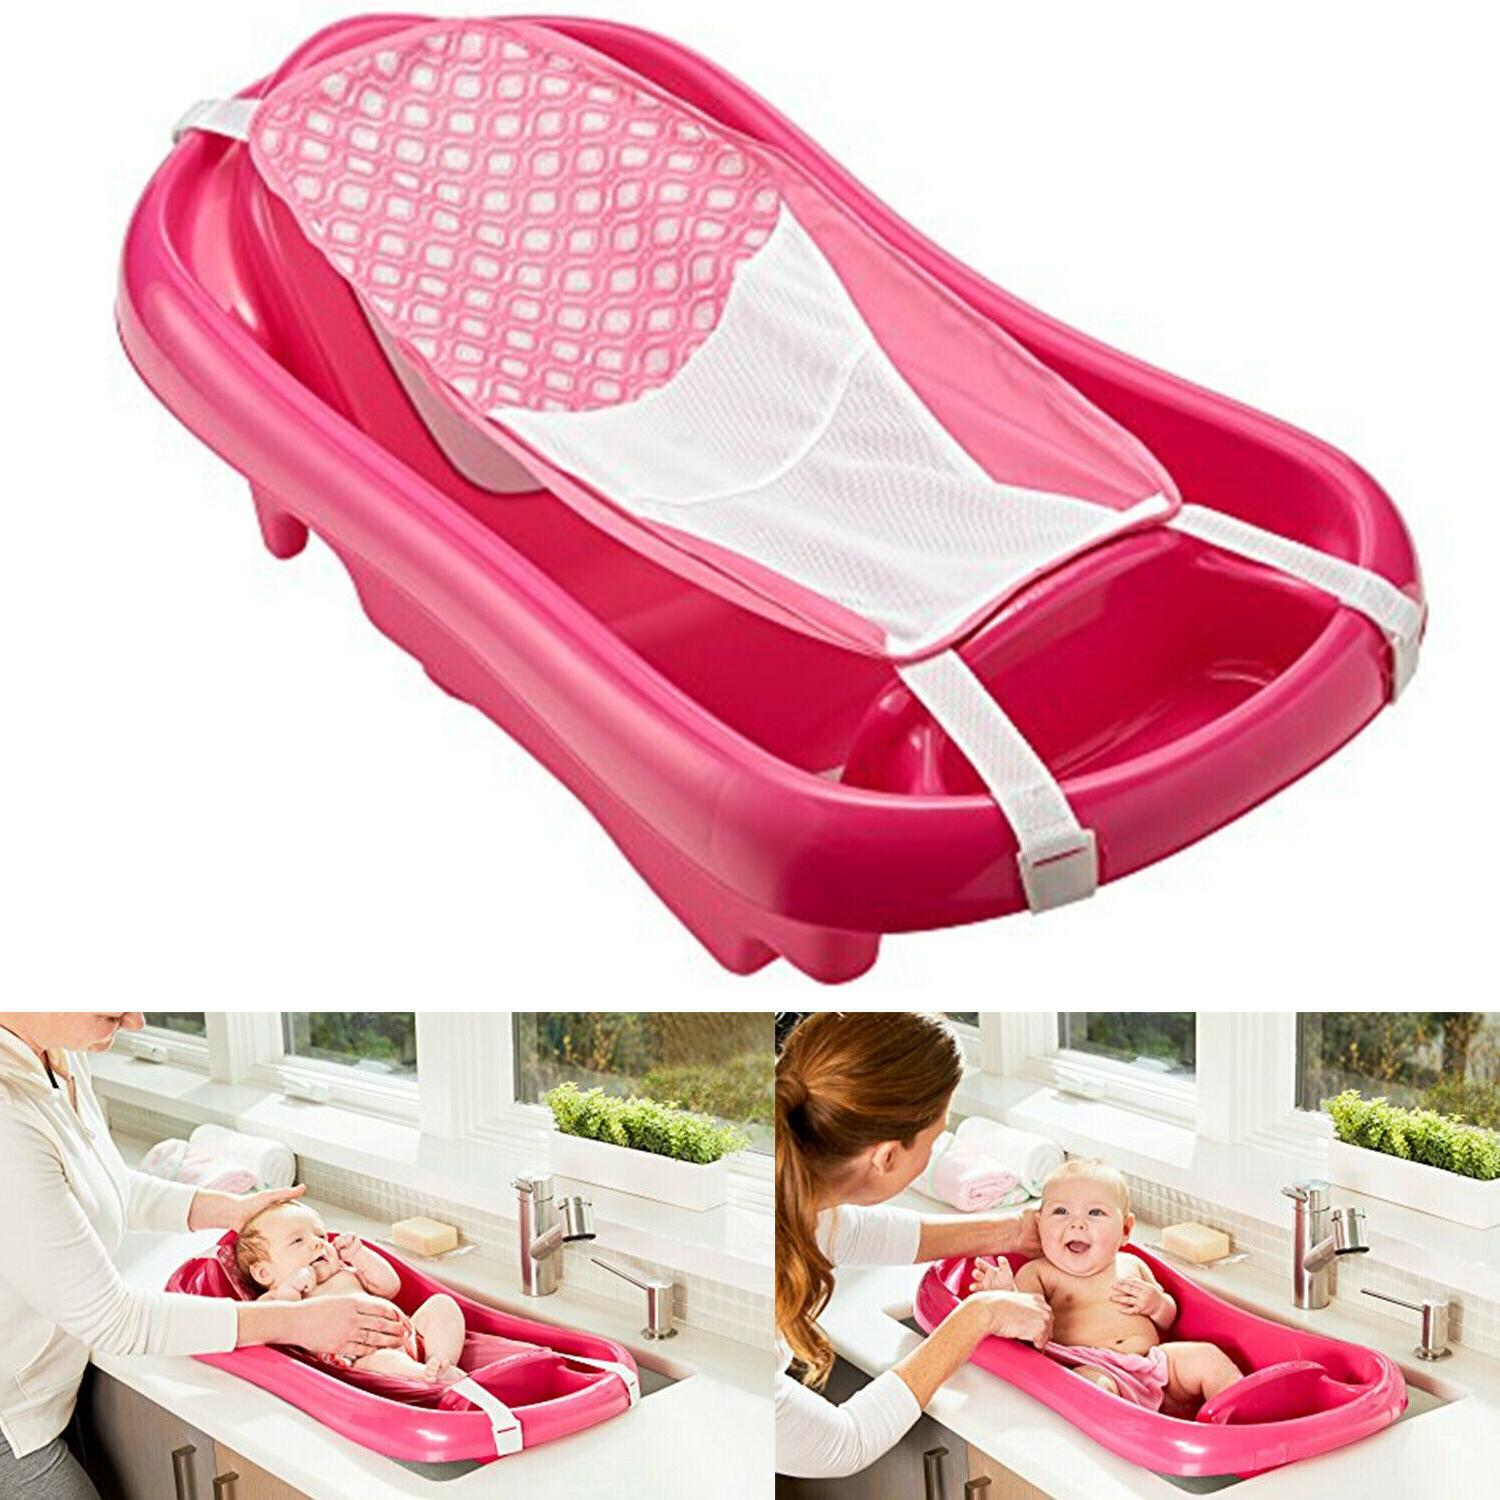 Baby Infant Bath Tub Safety Seat Pink Bathing Newborn Shower